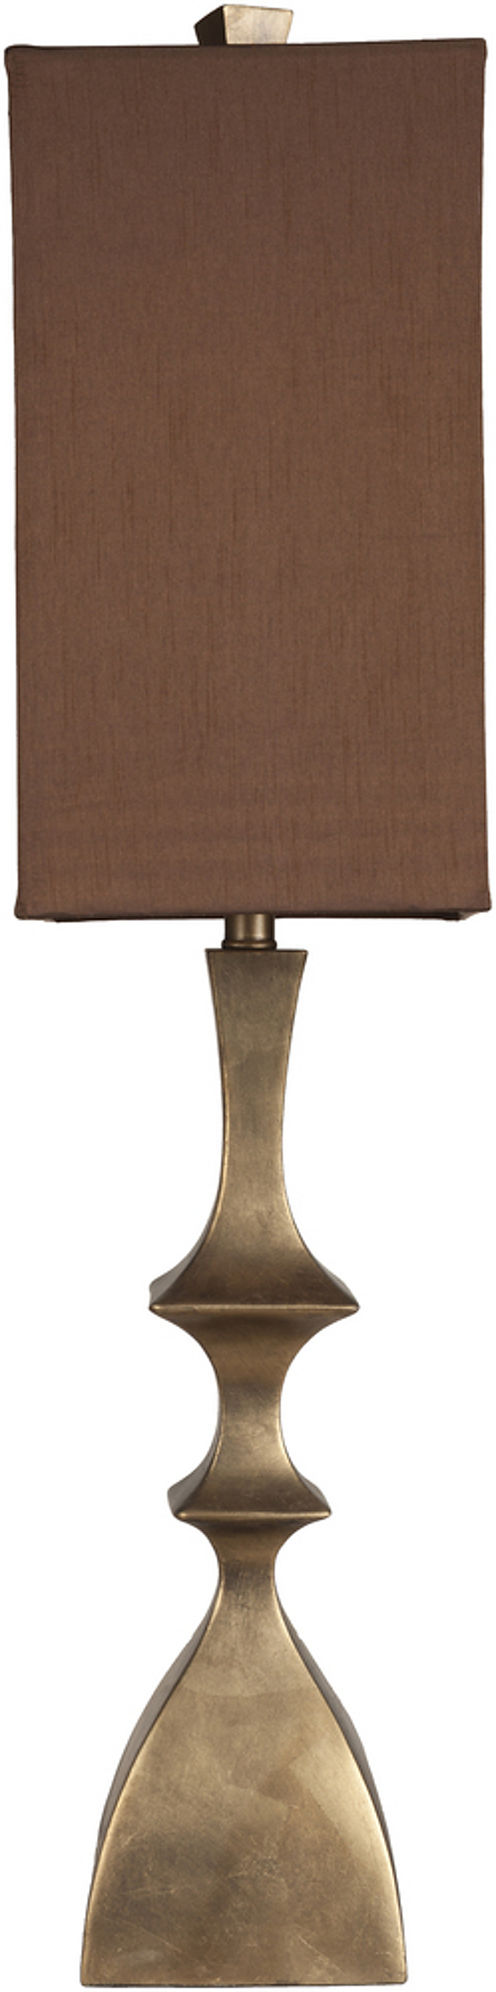 Décor 140 Kennelly 37x9x9 Indoor Buffet Lamp -Gold